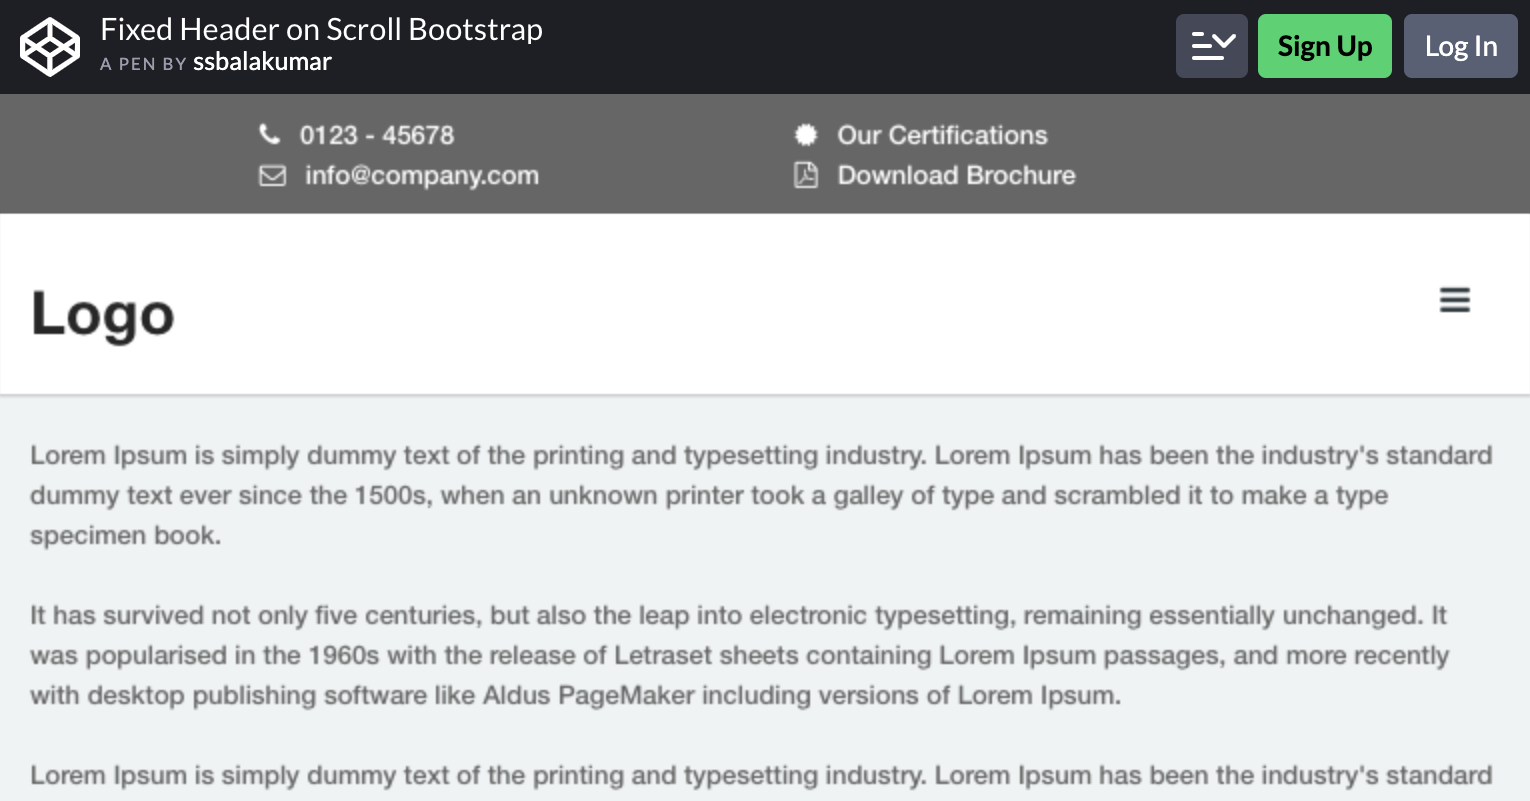 Fixed Header on Scroll Bootstrap